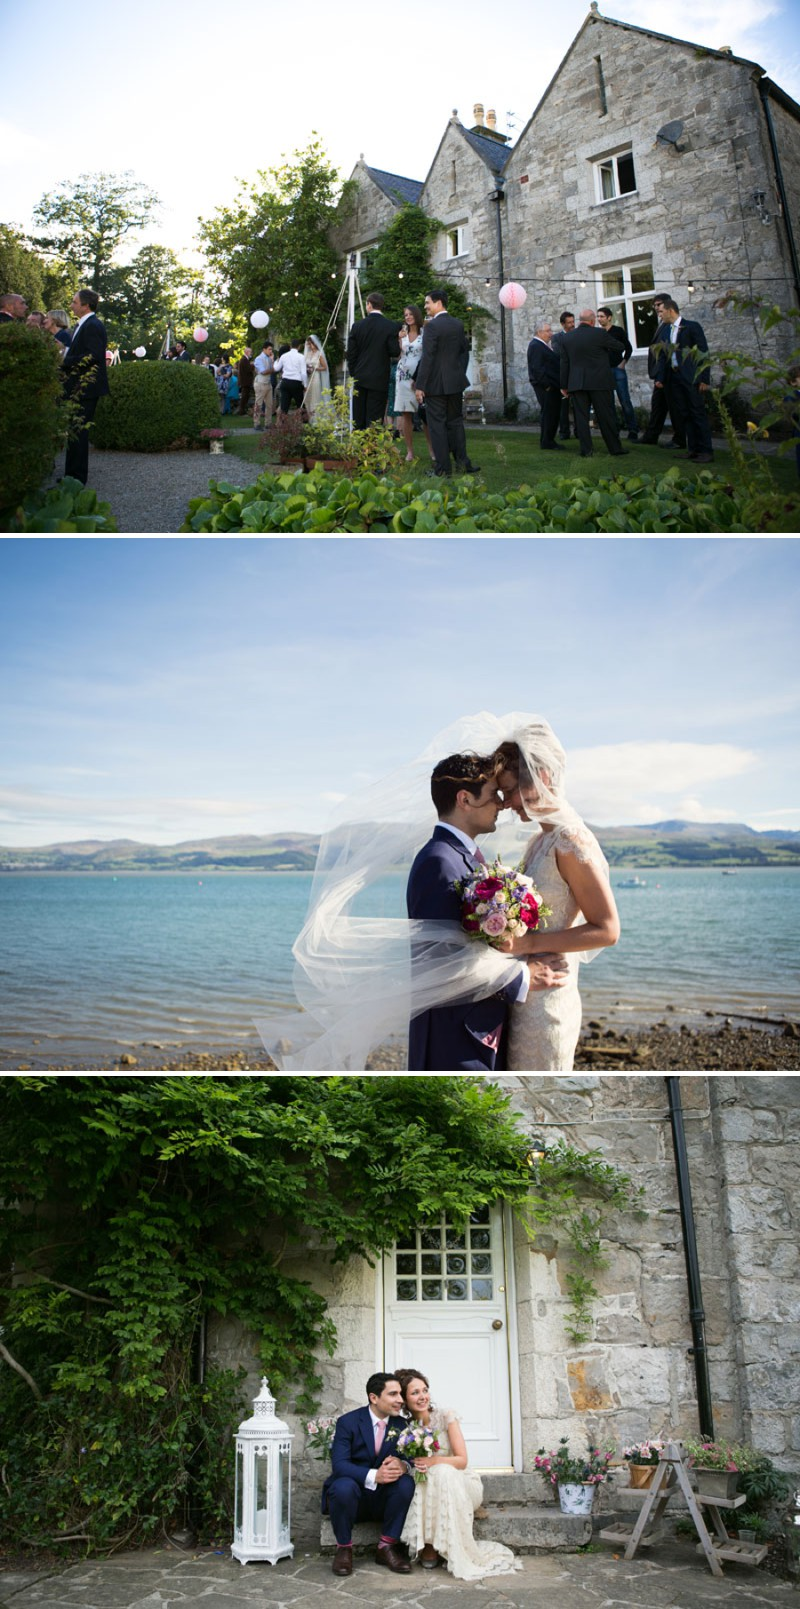 A Fusion Welsh Greek Cypriot Wedding With A Claire Pettibone Dress And A Colour Pop Bouquet By Lily & Frank Photography._0005